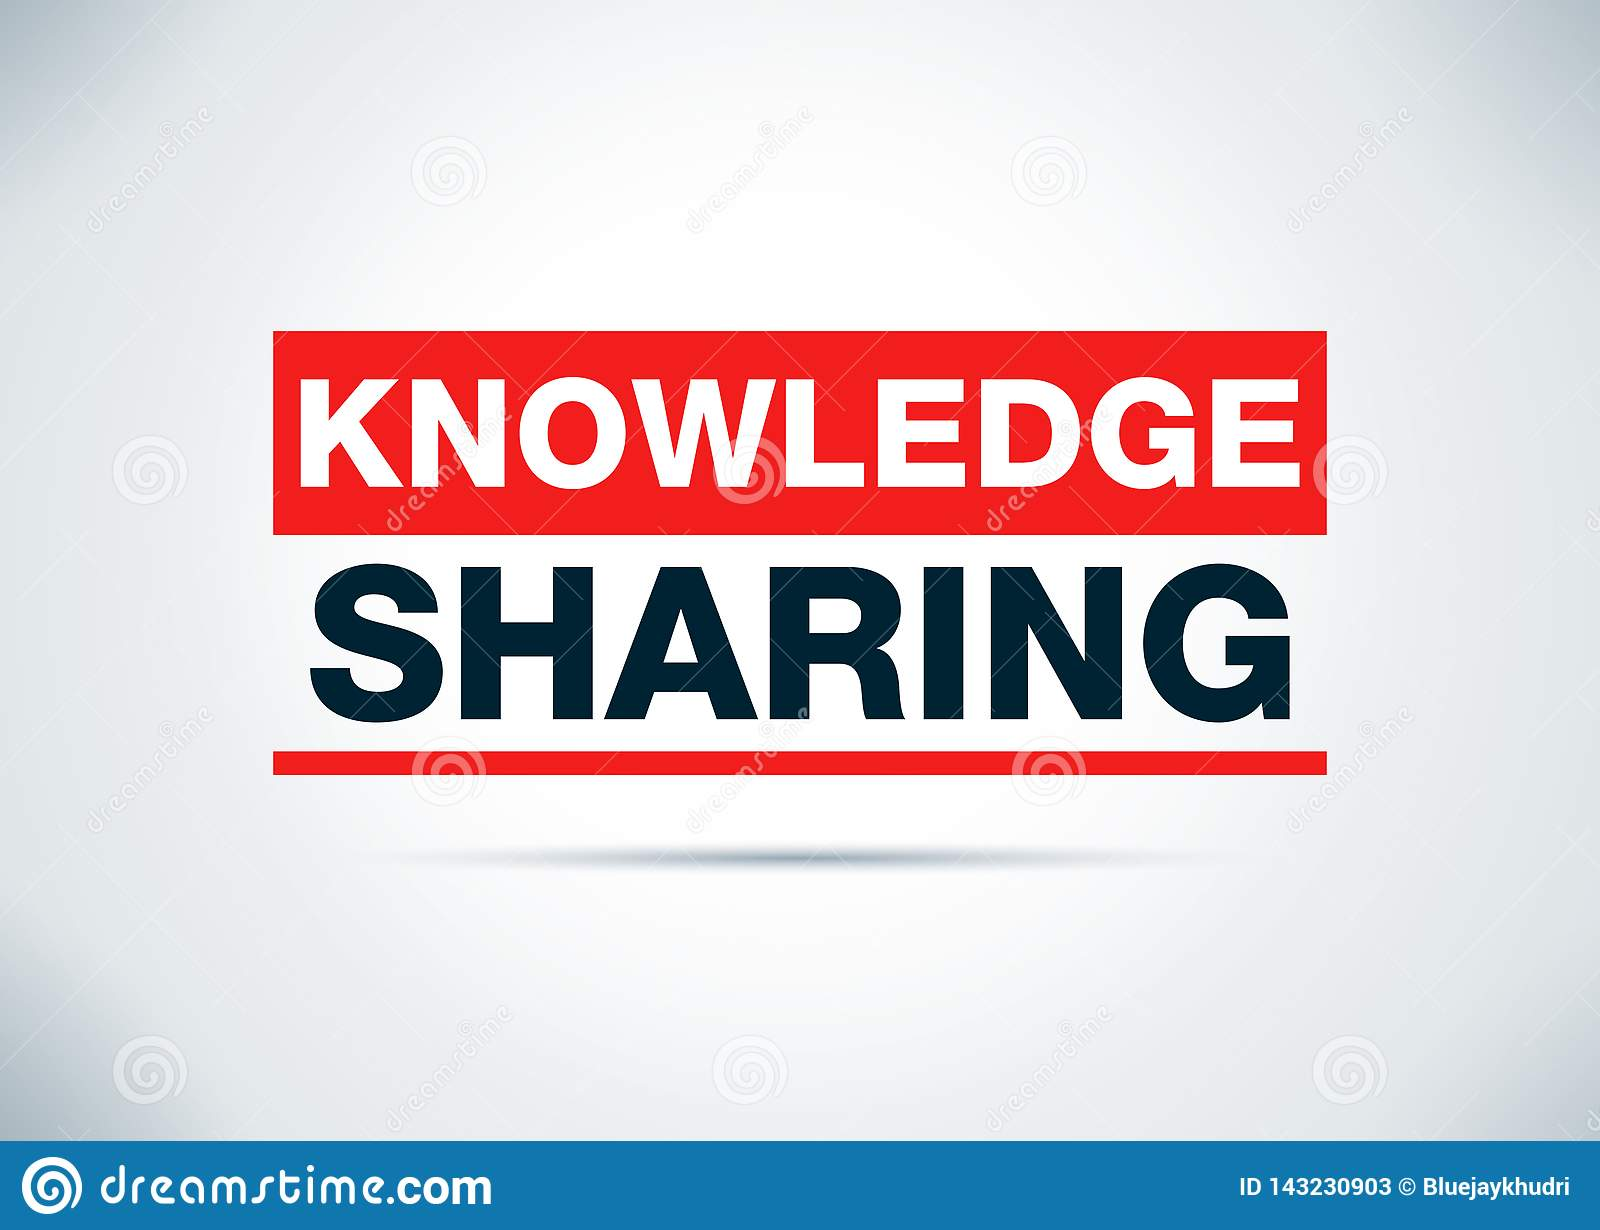 Knowledge Sharing Abstract Flat Background Design Illustration